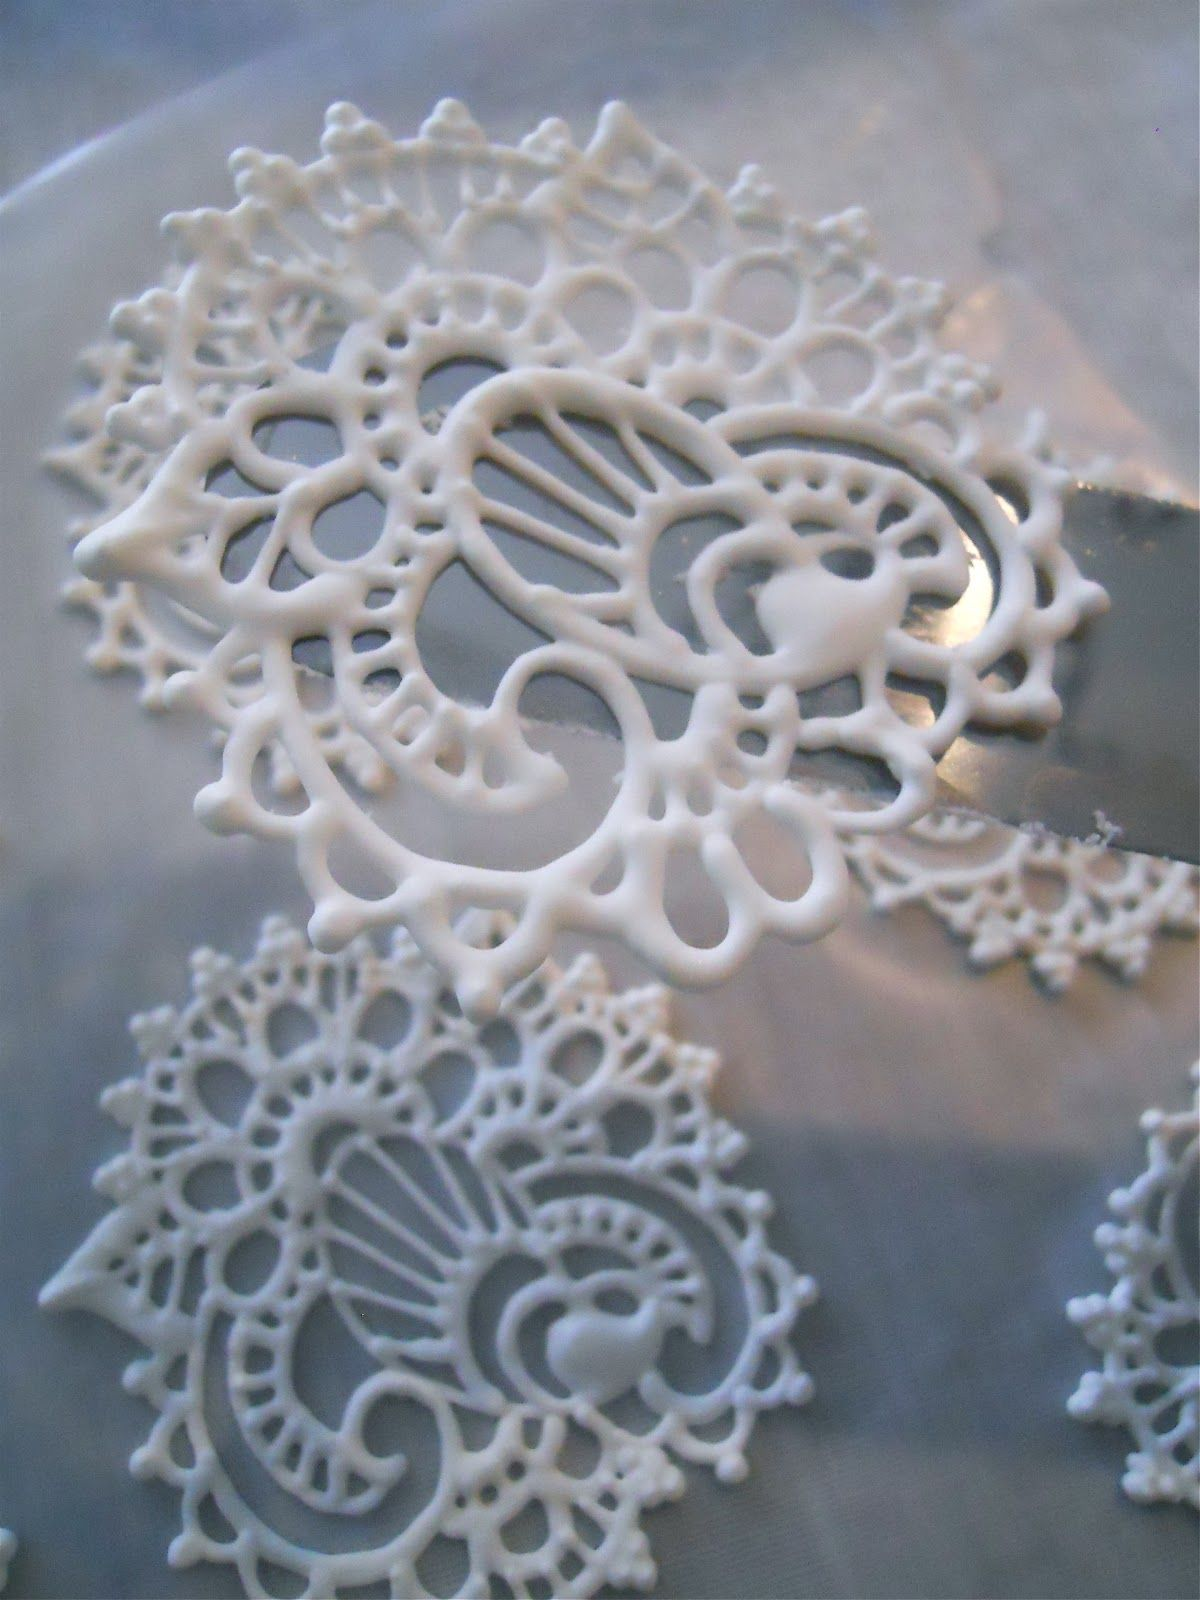 D corations en dentelle faites de gla age royal icing lace designs for decorating cakes d co - Decoration gateau glacage royal ...